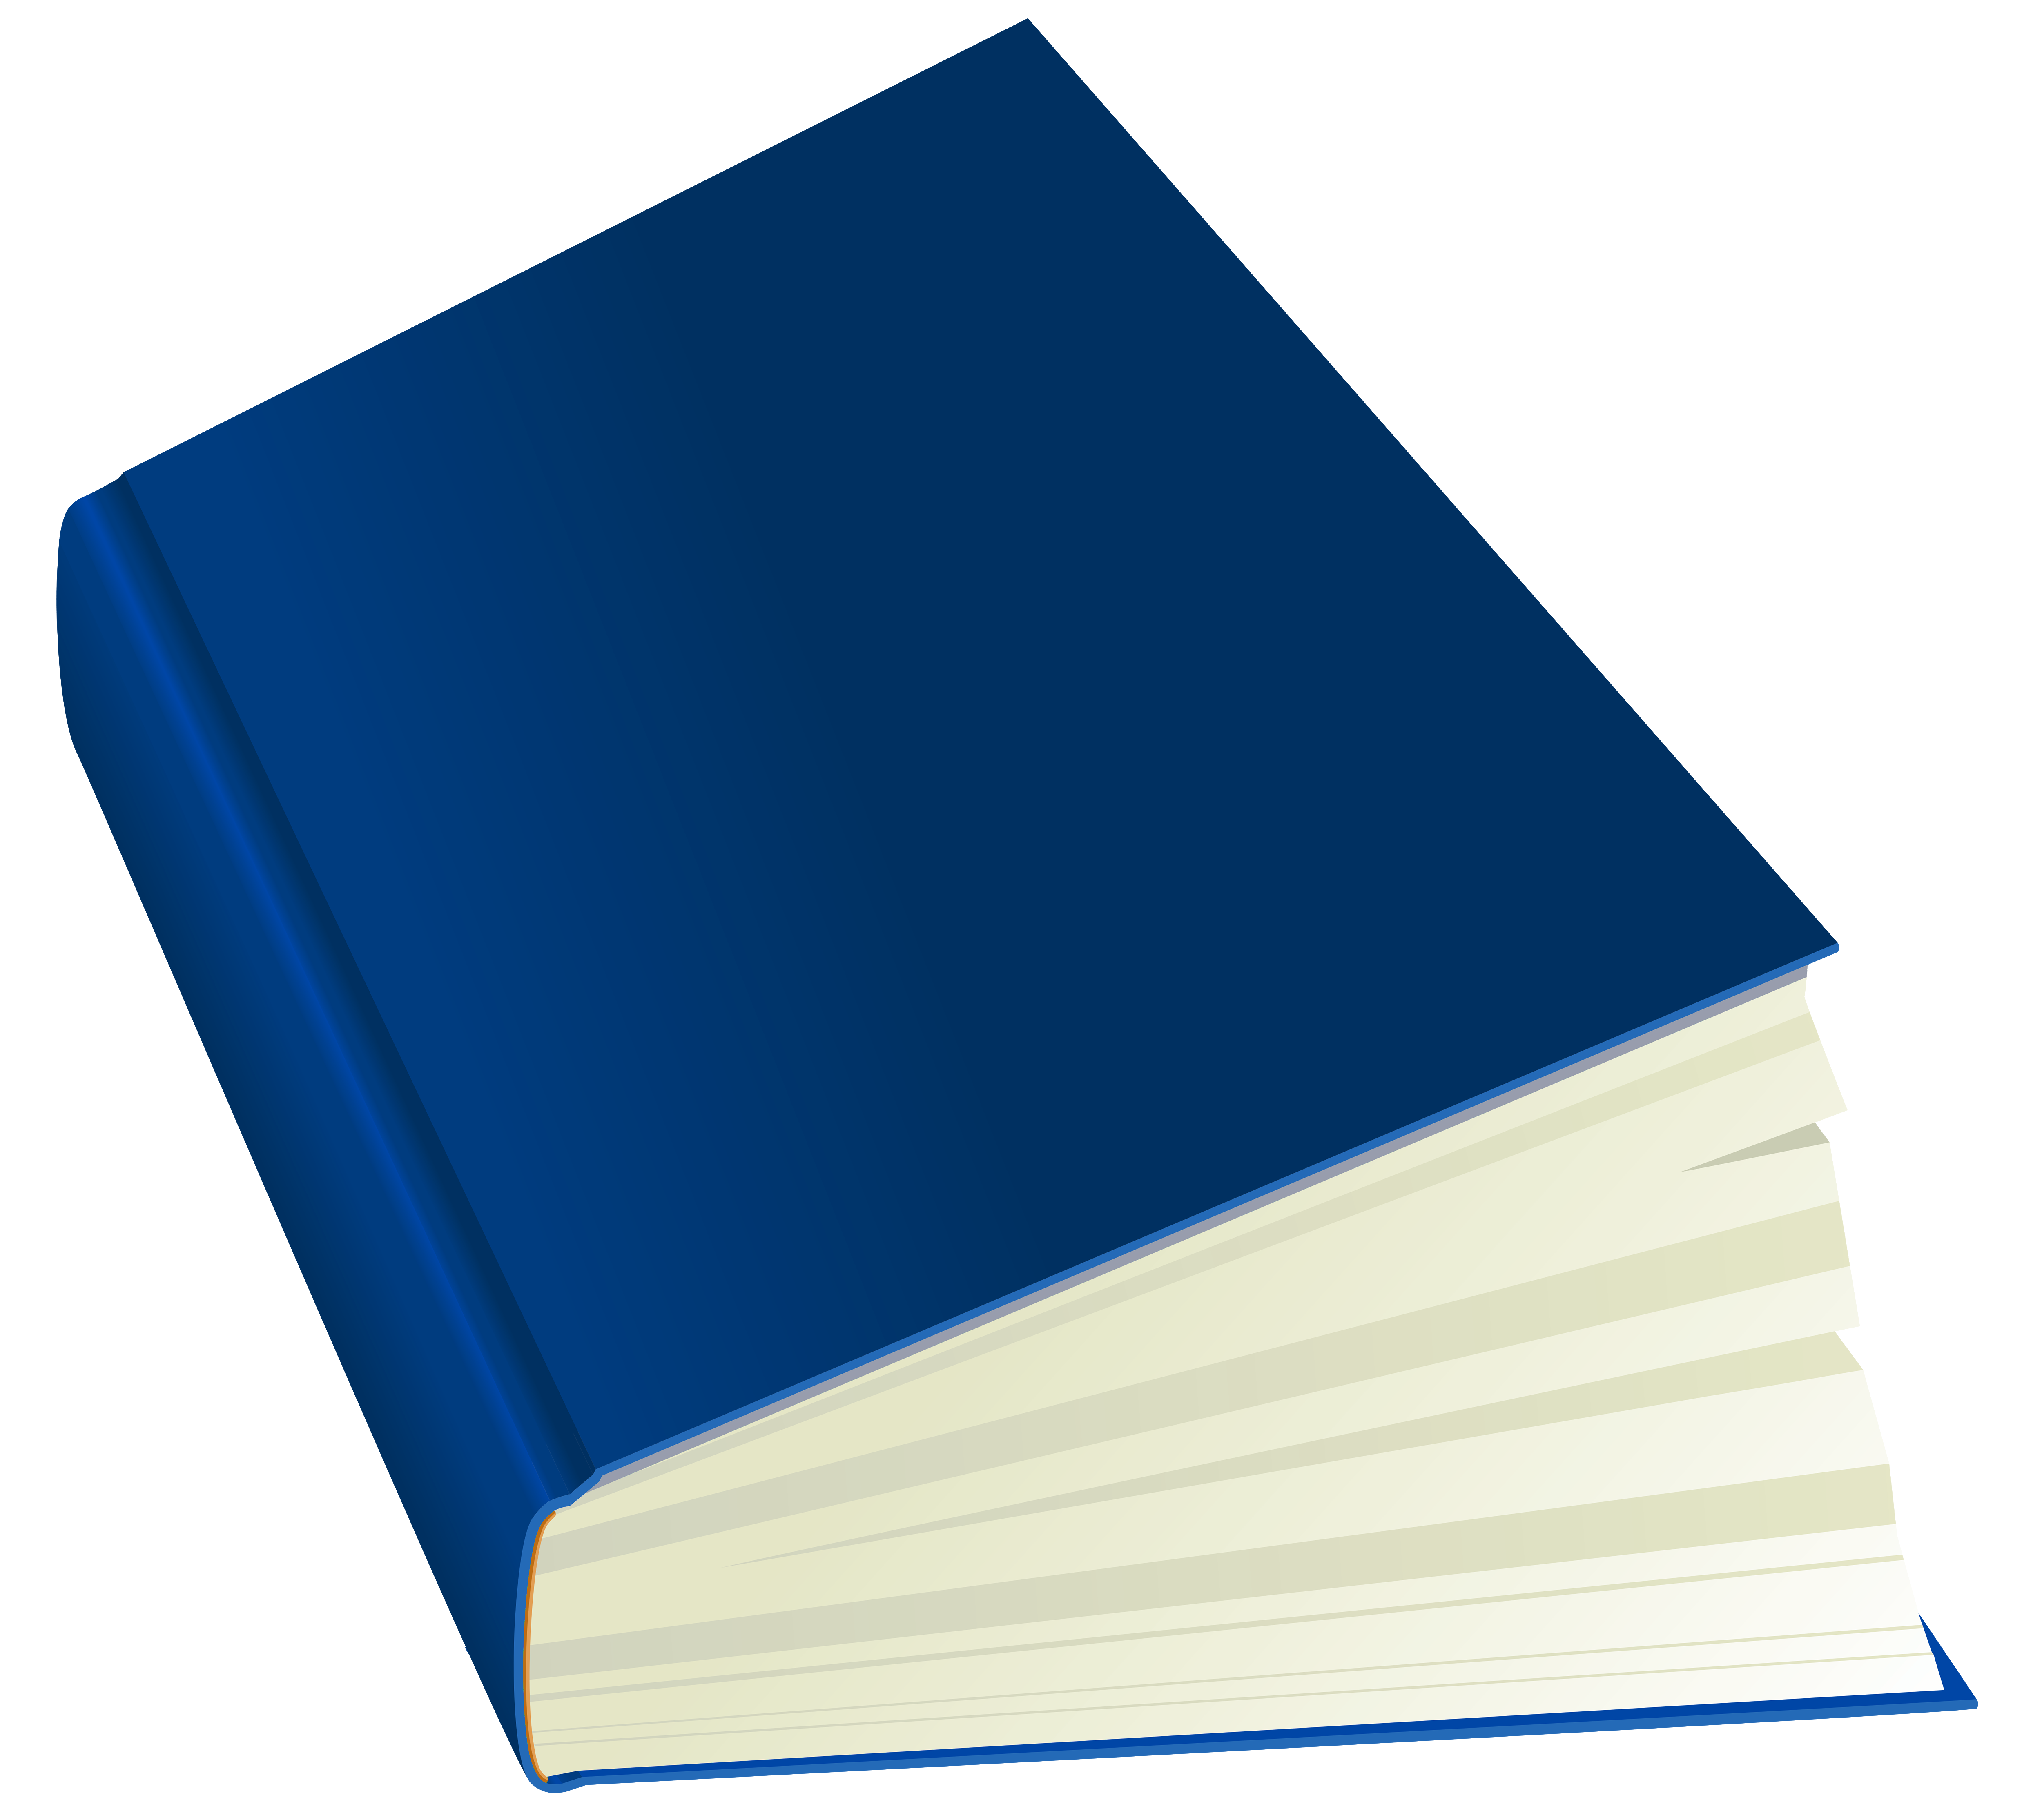 Blue Book PNG Clipart.